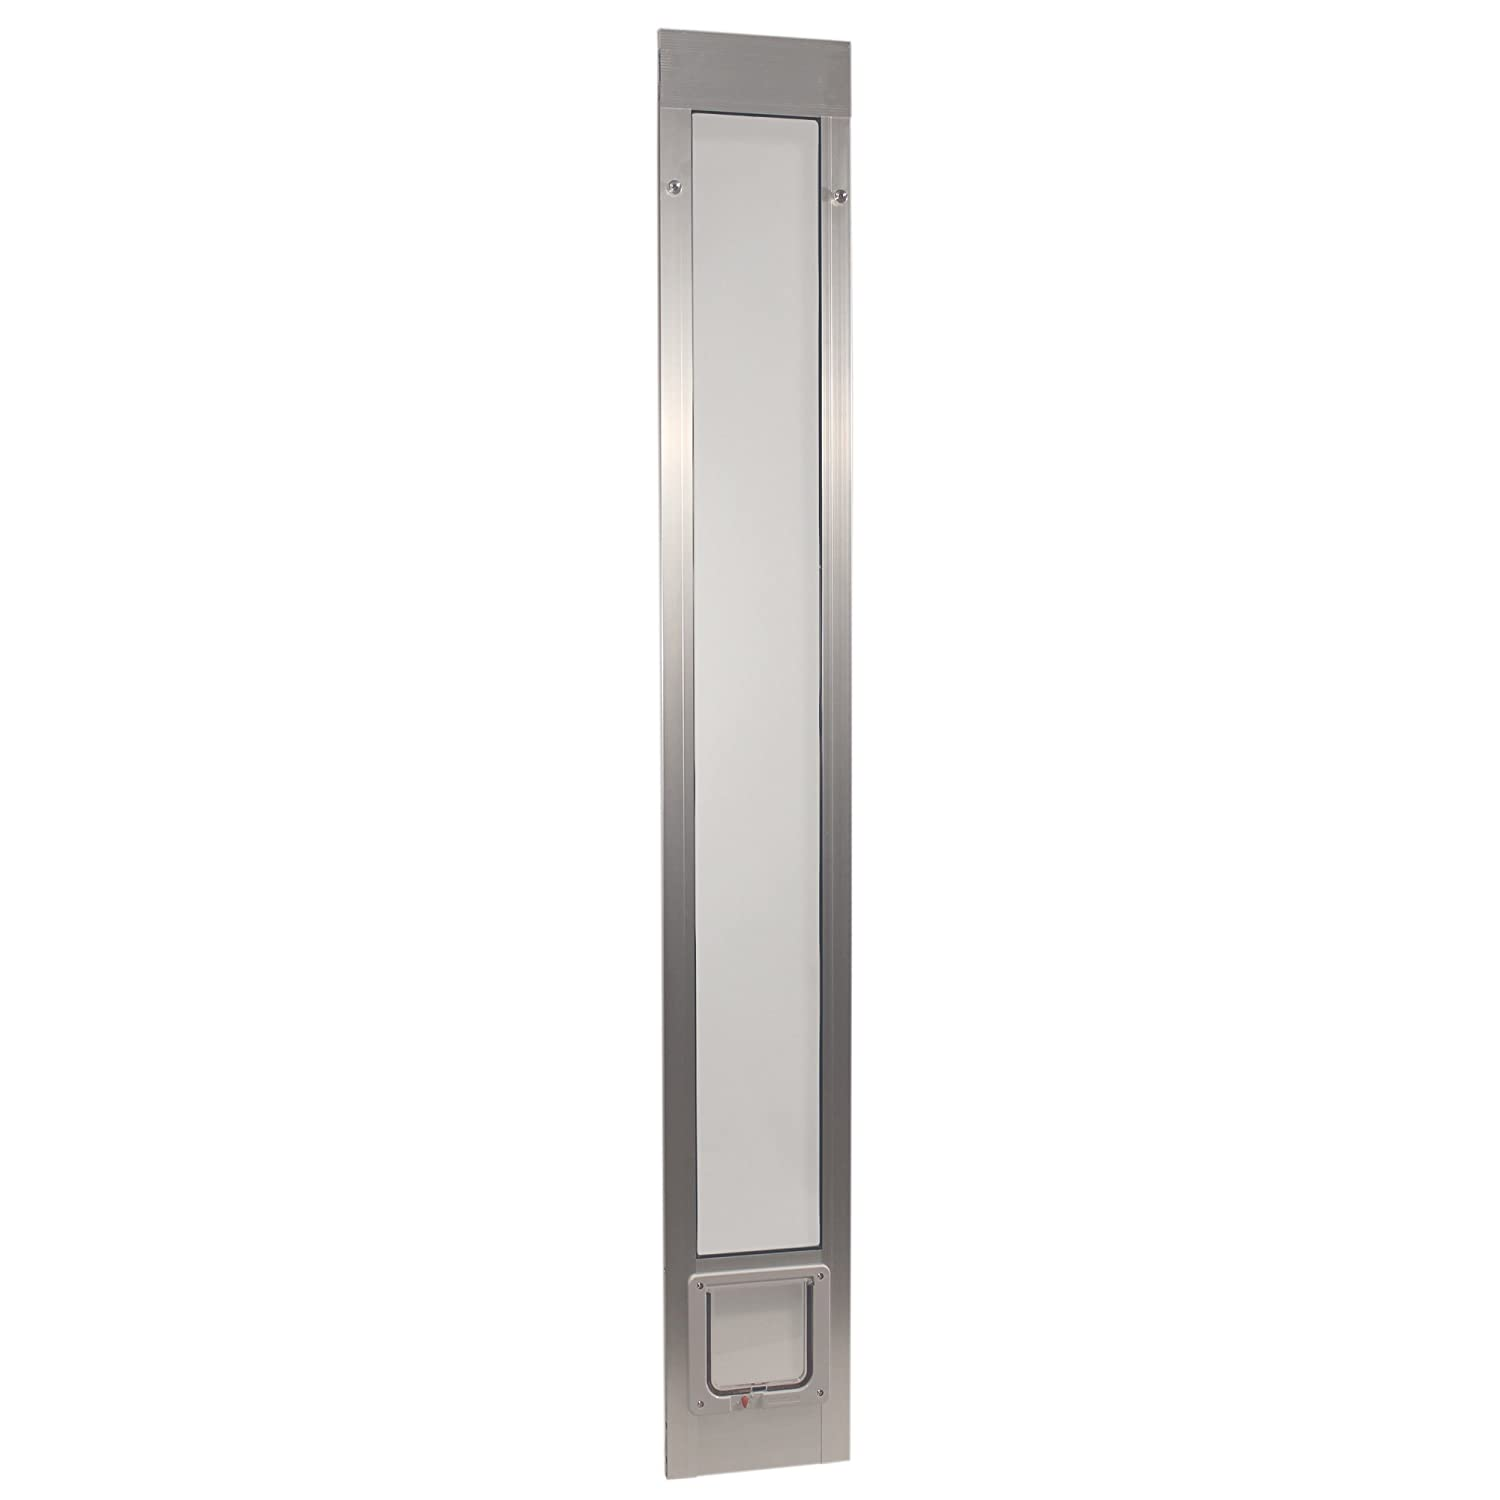 Mill Silver Cat Flap 6.25\ Mill Silver Cat Flap 6.25\ Ideal Pet Products 96PATCFM 96  Fast Fit Aluminum Pet Patio Door with Flap Mill, Small 6.25  x 6.25 , Silver